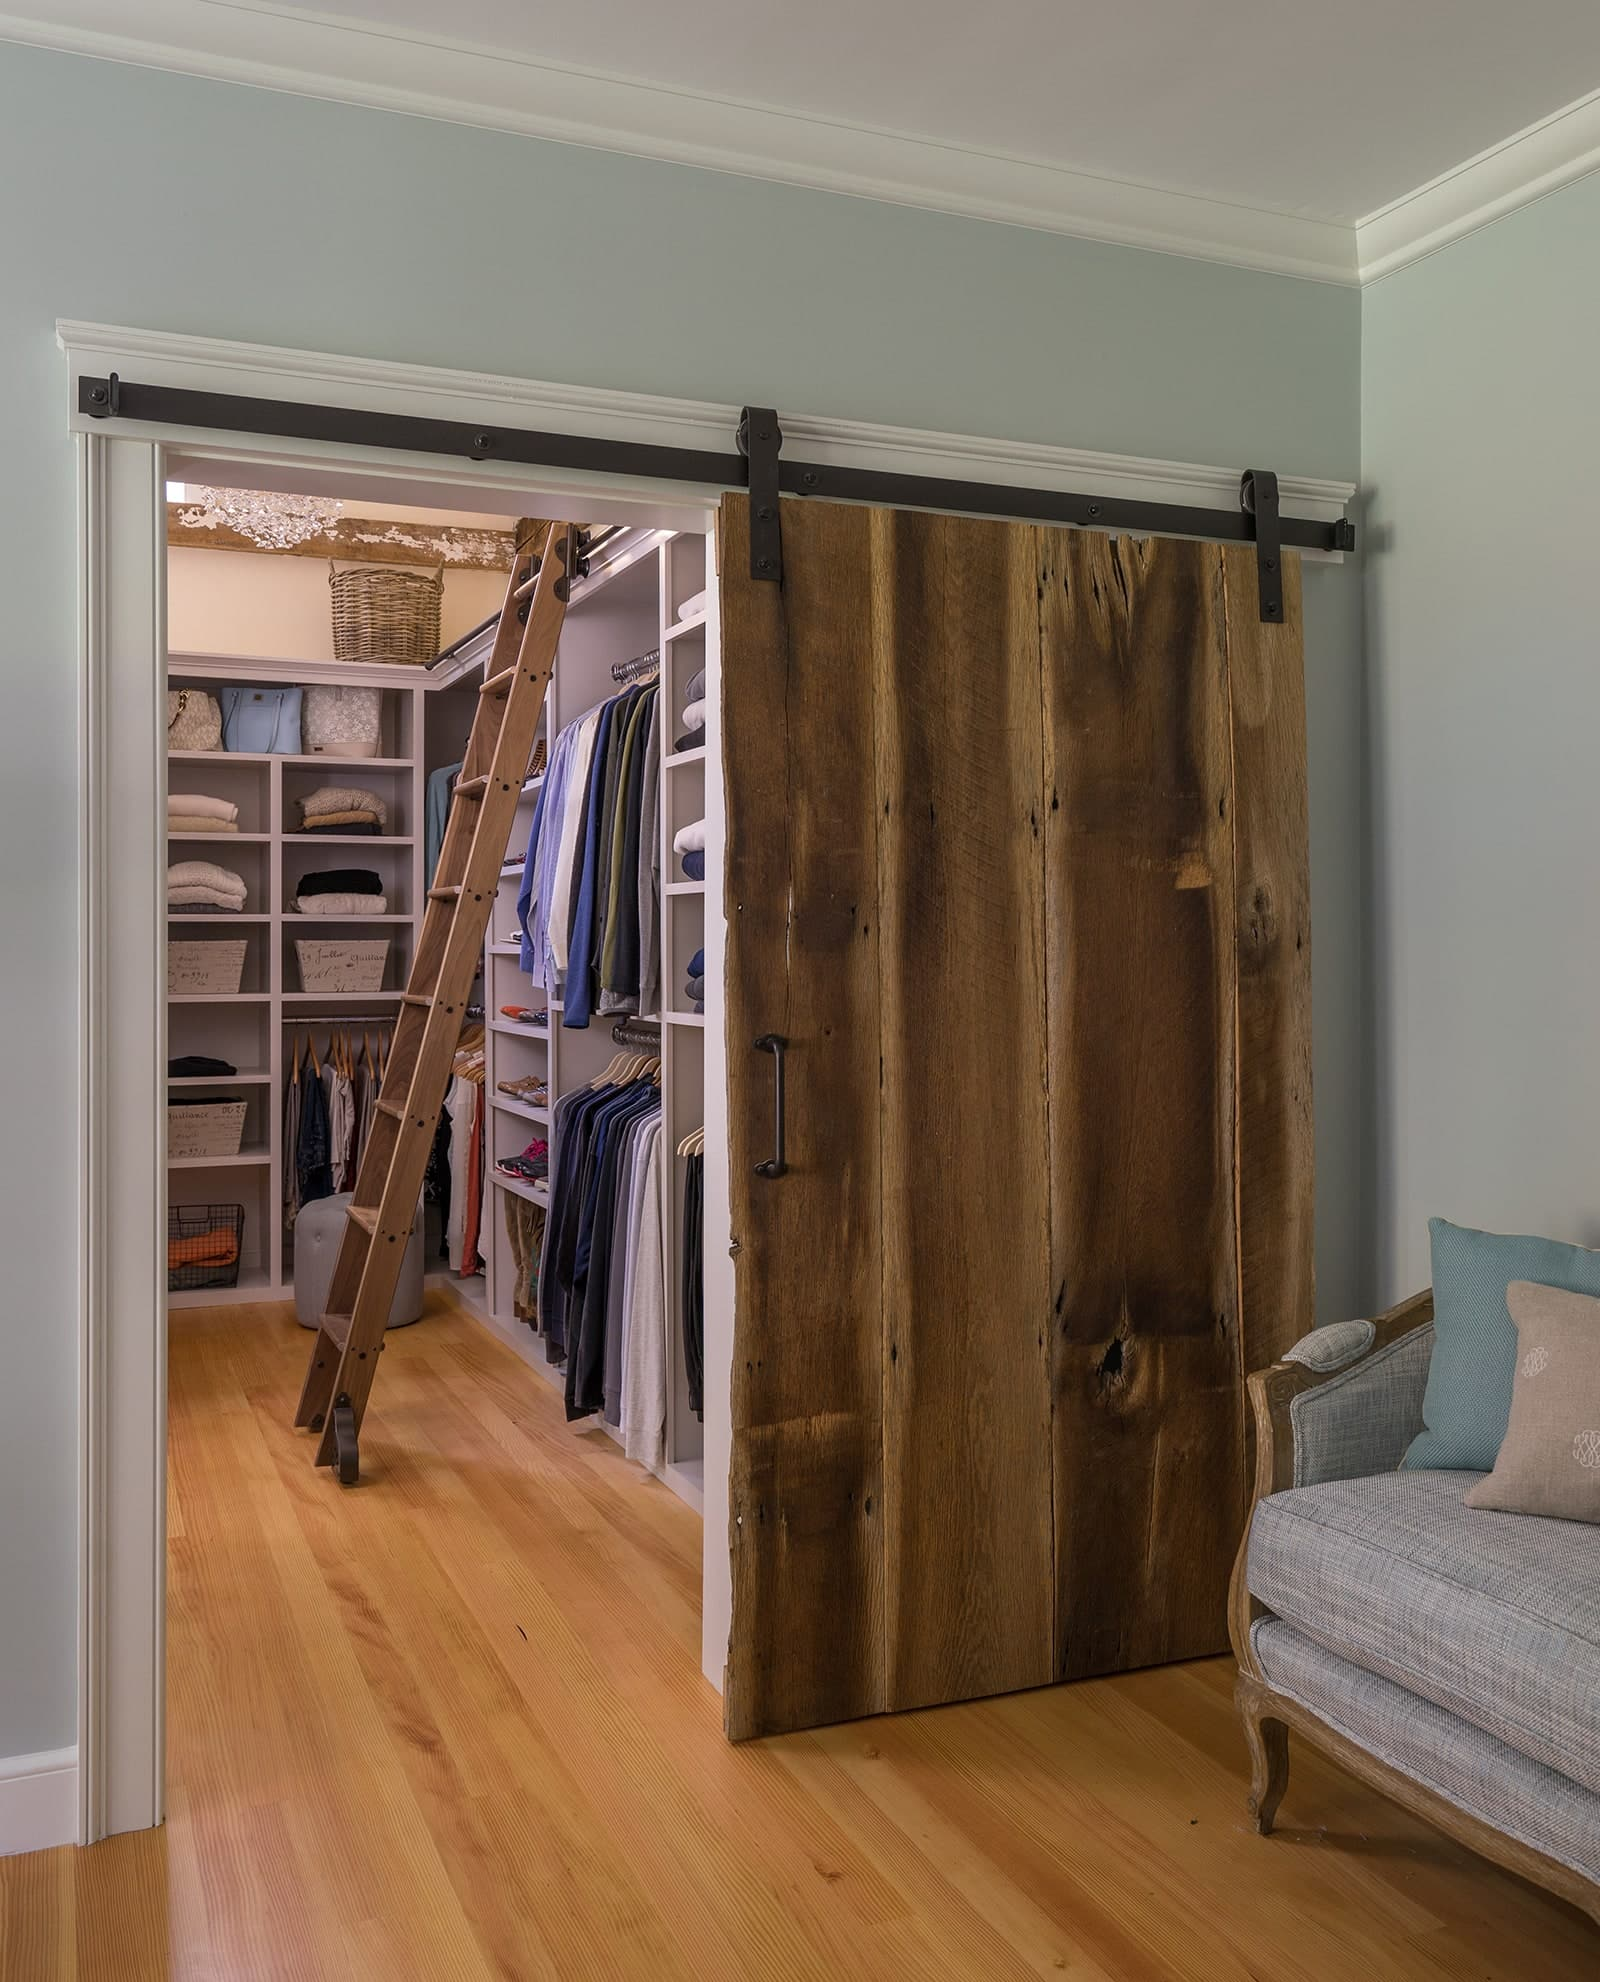 Farmhouse Flair Interiors Ipswich MA Closet